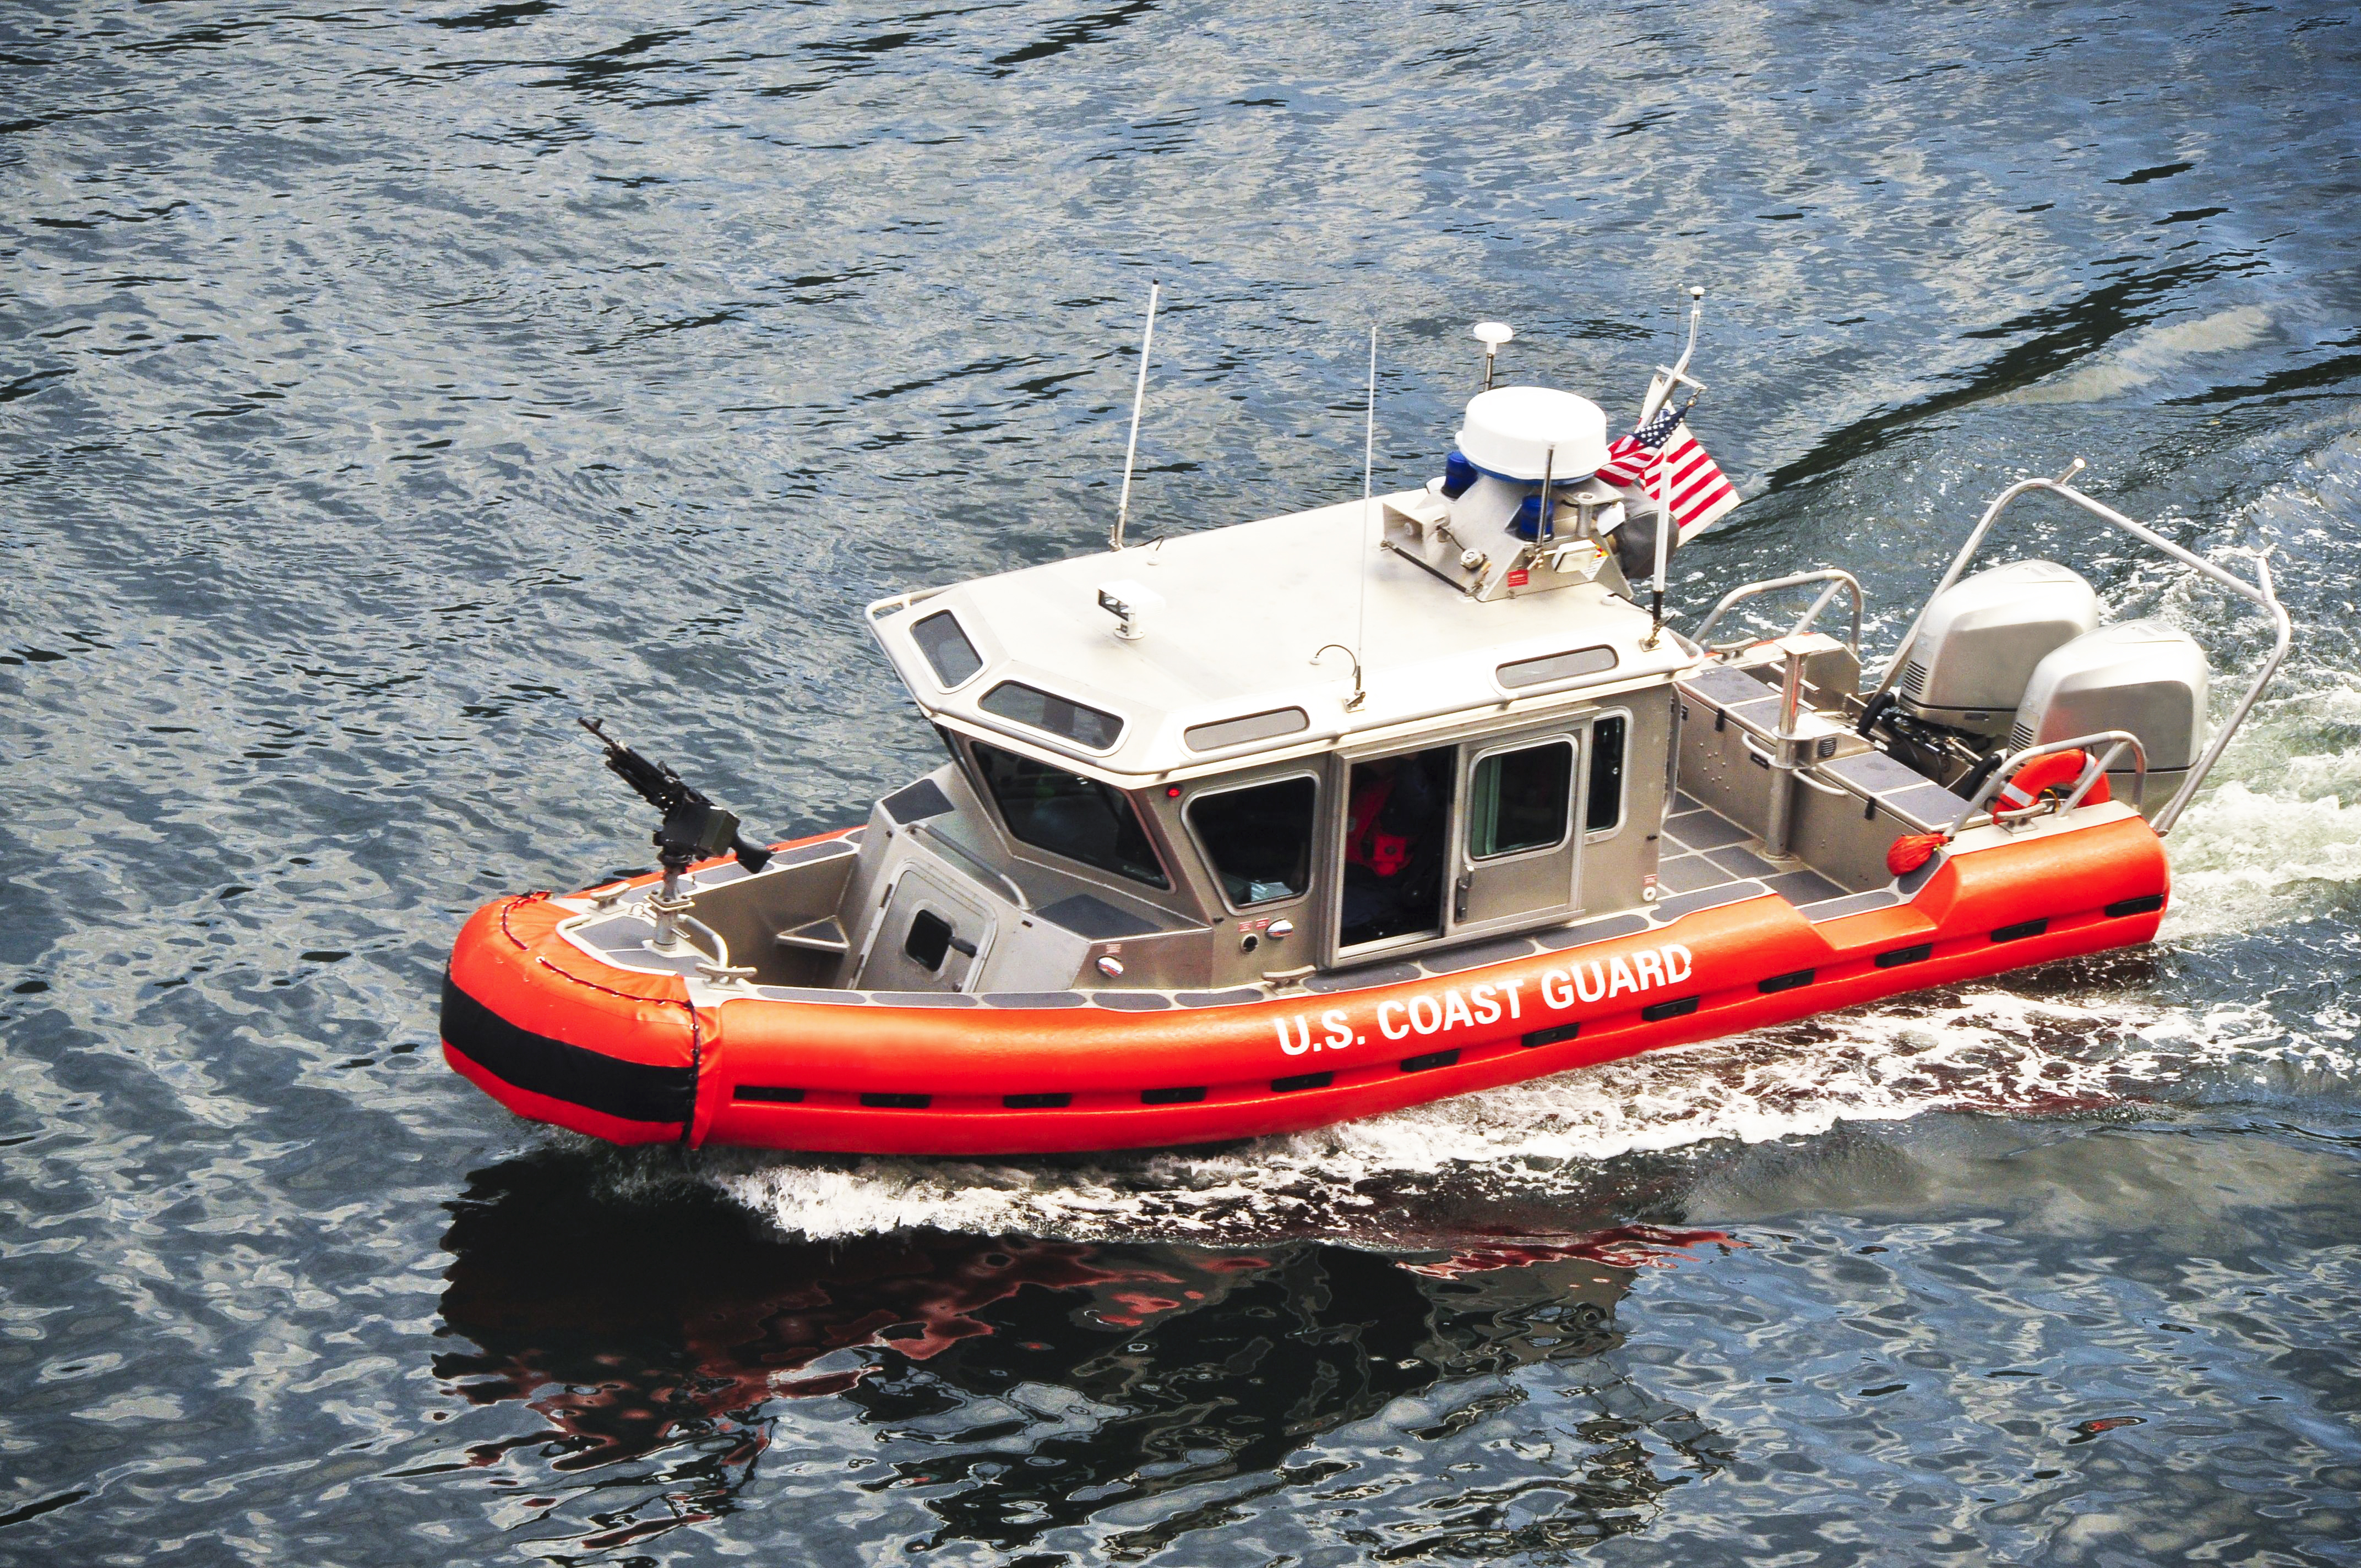 Westlake Legal Group iStock-487745643 Coast Guard search off Maine suspended without finding missing man, 3 children Robert Gearty fox-news/us/us-regions/northeast/maine fox news fnc/us fnc cf554401-7f87-56ad-a9b7-cf547e0449db article